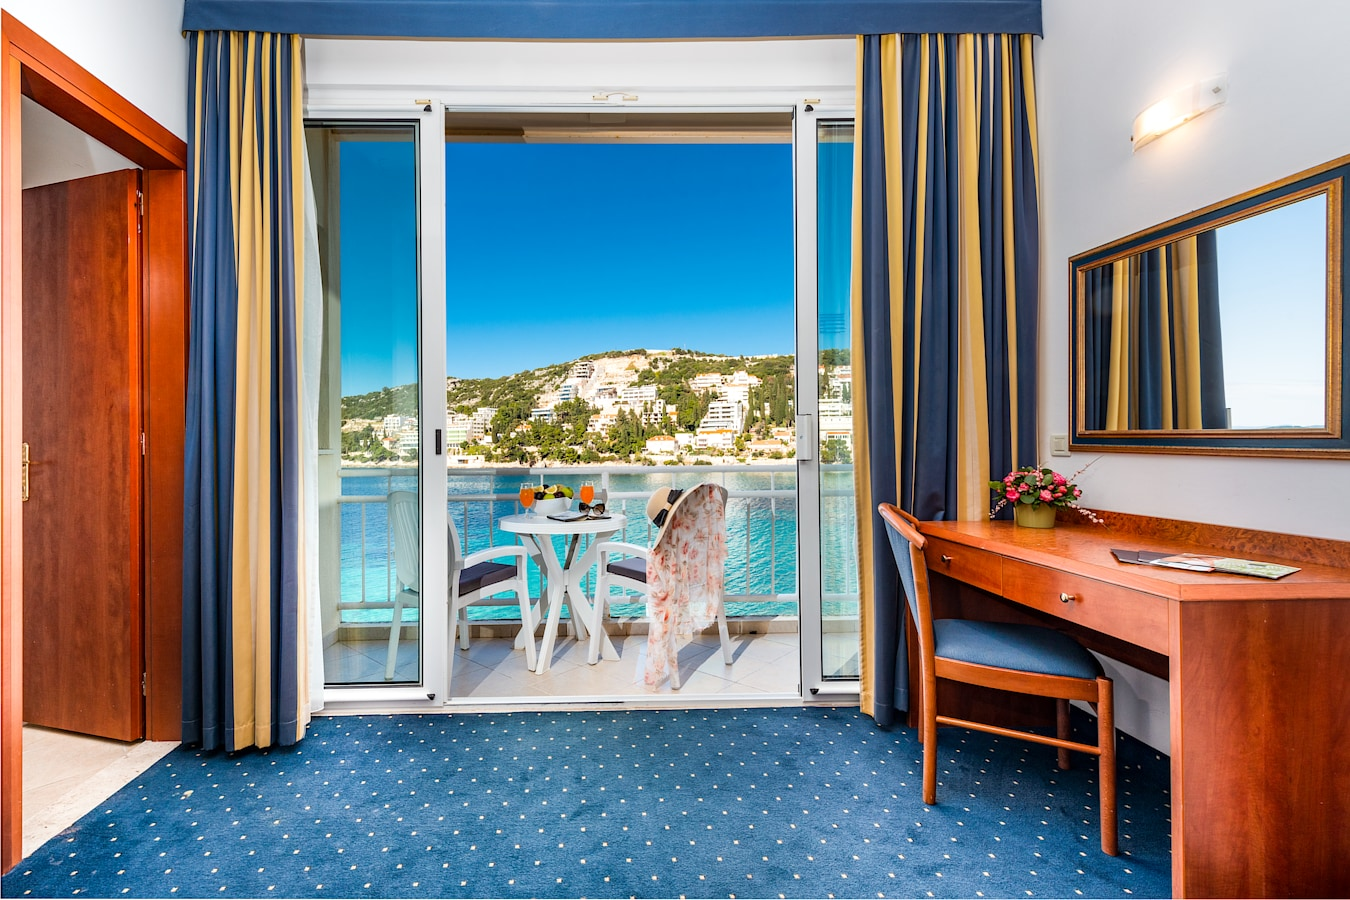 vis-hotel-dubrovnik-superior-room-balcony-sea-view.jpg